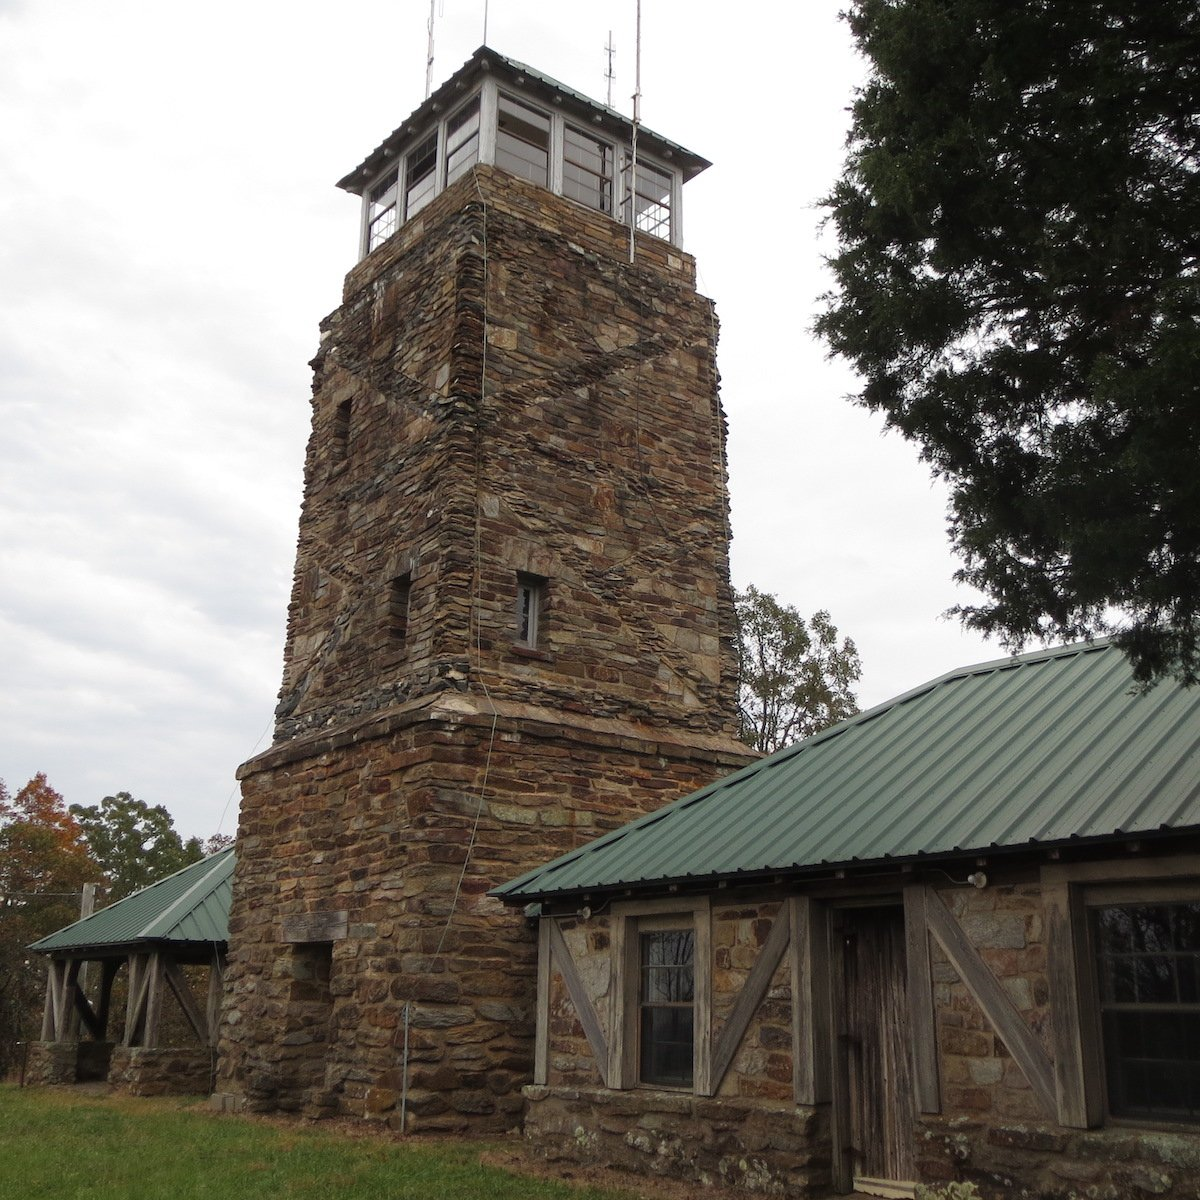 Stone tower at Flagg Mountain.